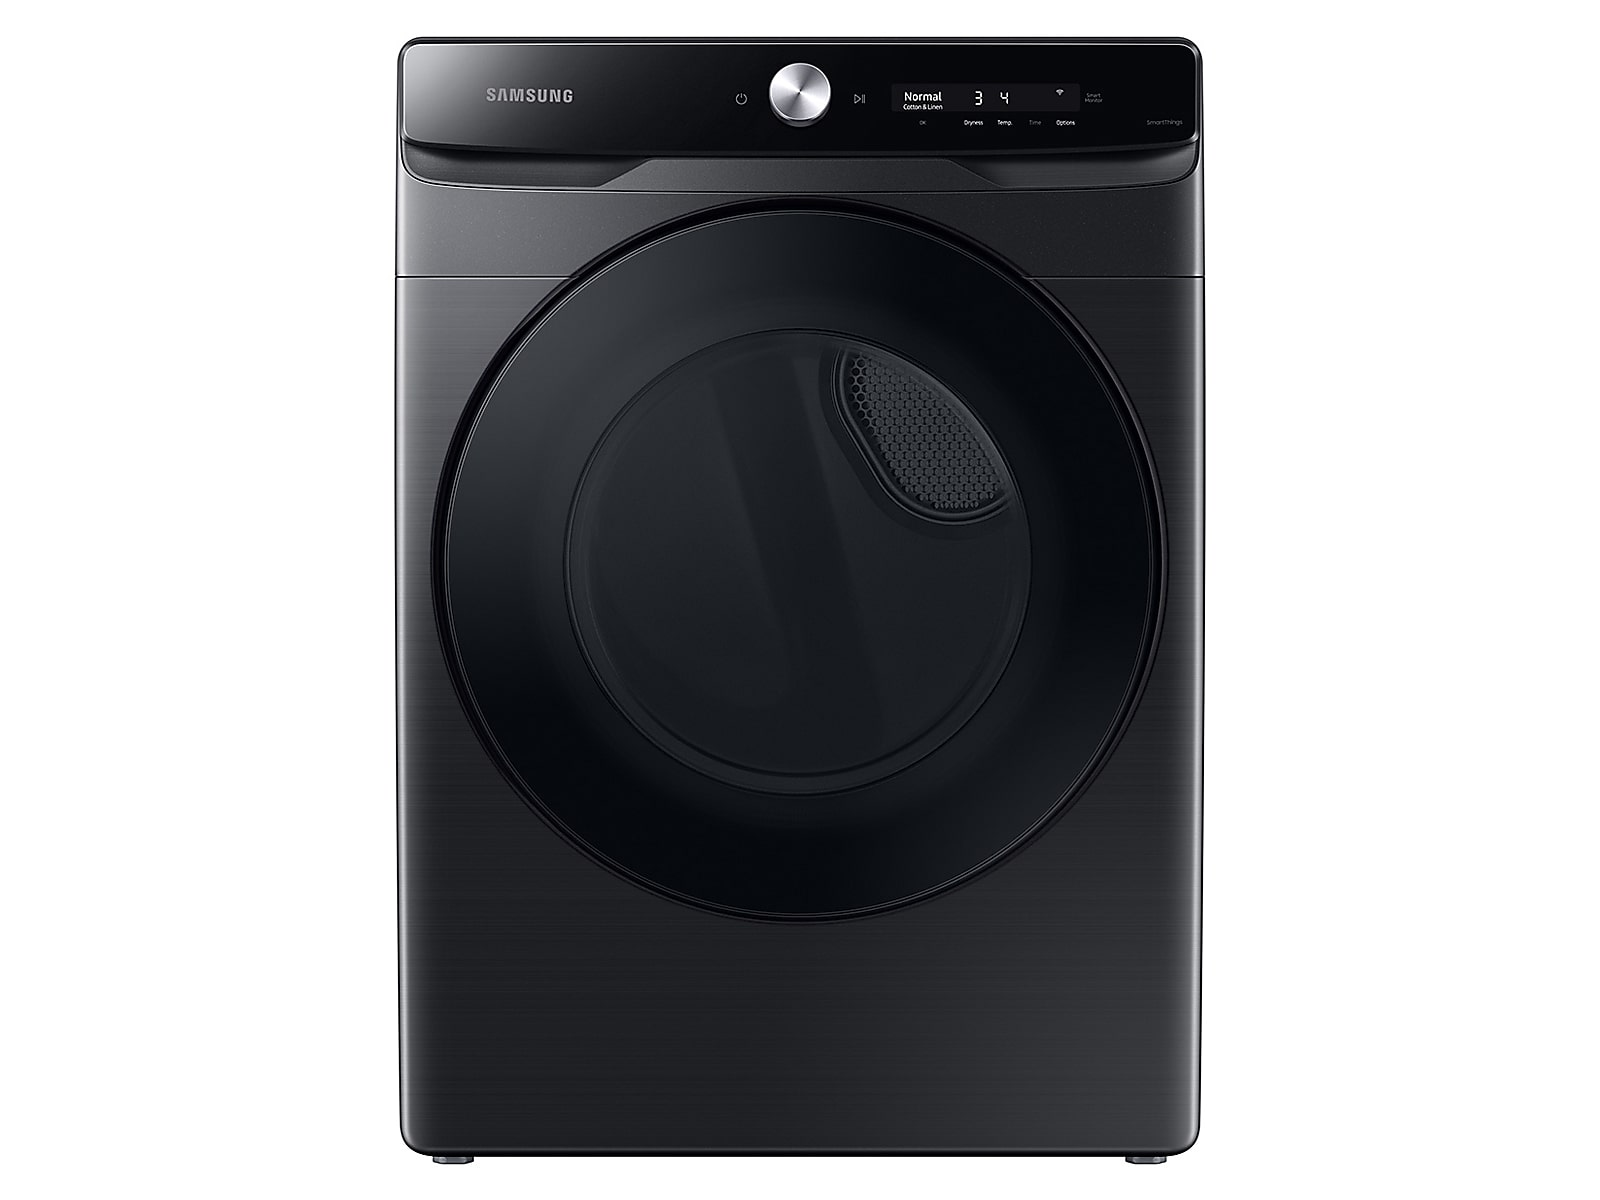 Samsung coupon: Samsung 7.5 cu. ft. Smart Dial Gas Dryer with Super Speed Dry in Brushed Black(DVG50A8600V/A3)